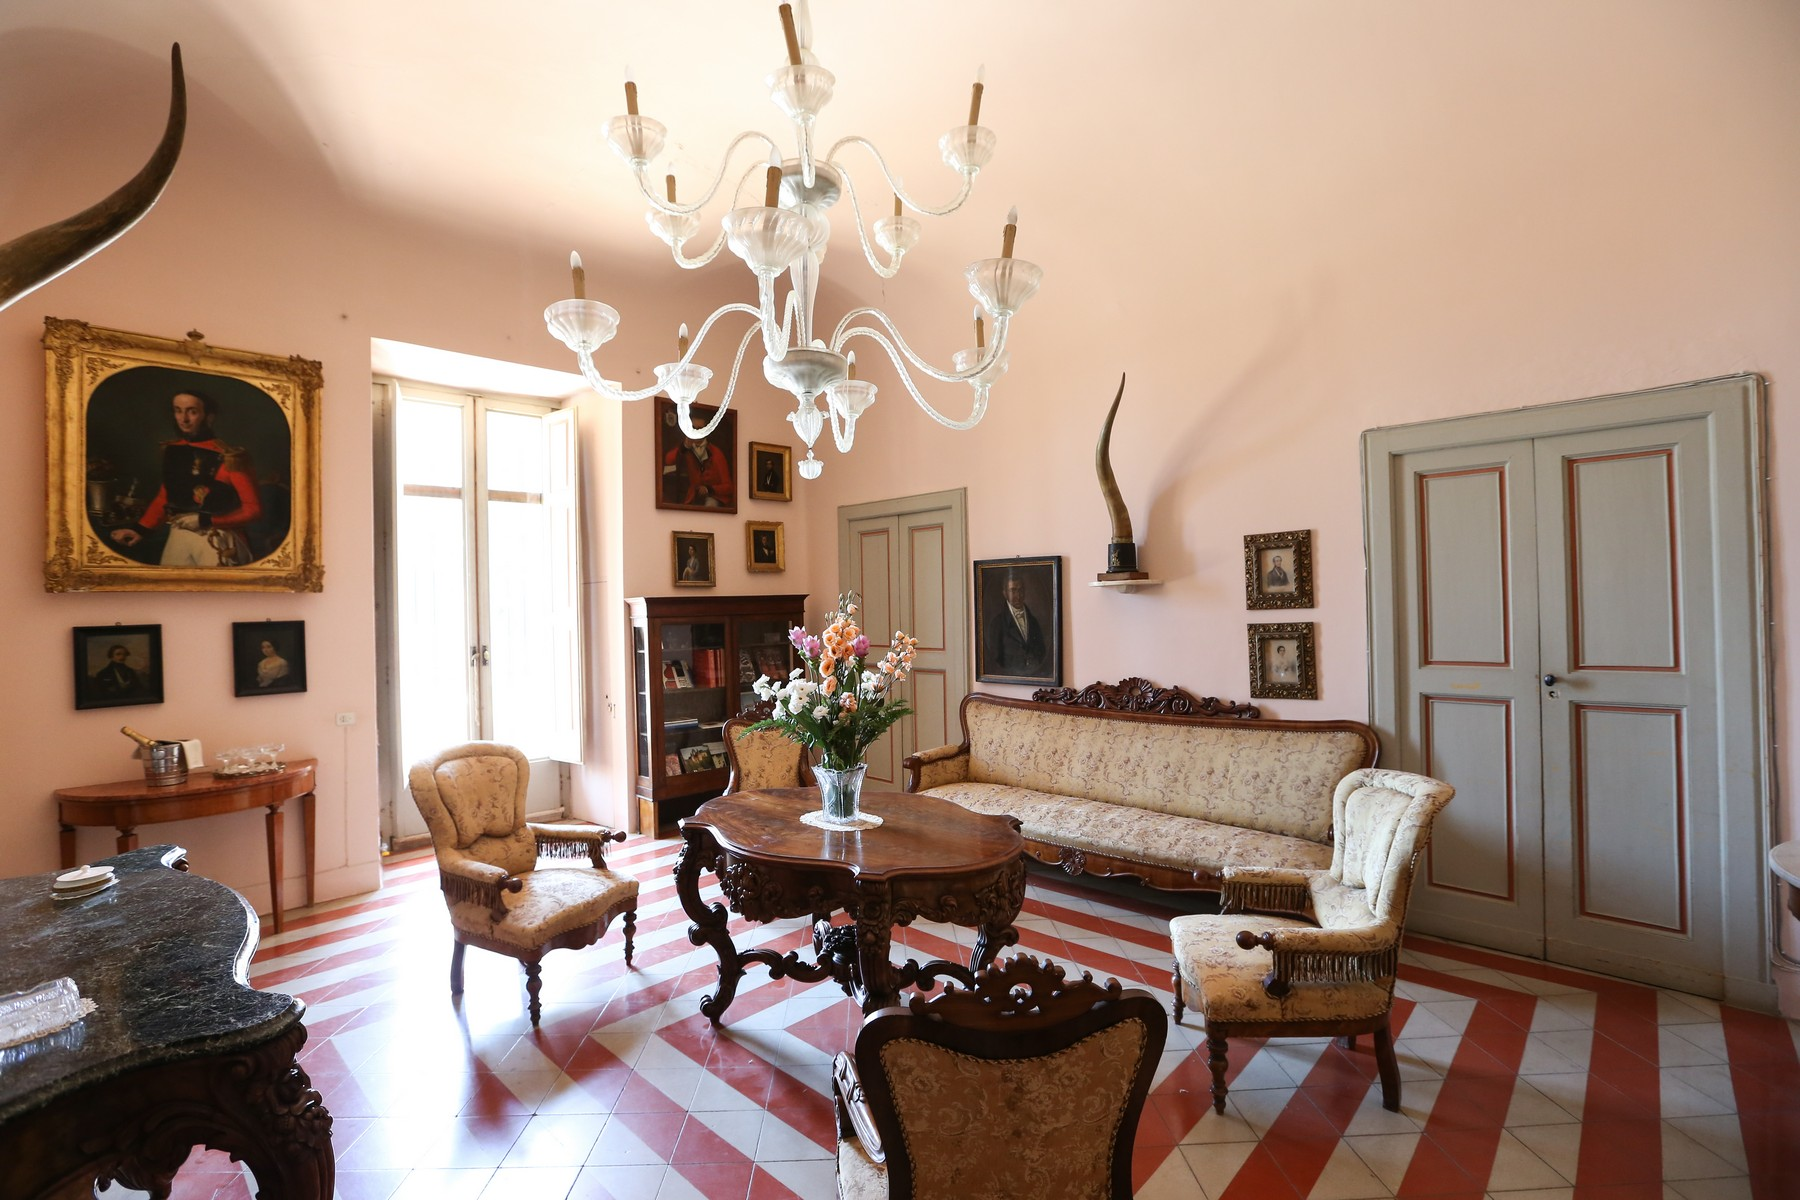 Additional photo for property listing at Villa Meo Evoli Contrada S. Oceano Monopoli, Bari 70043 Italien